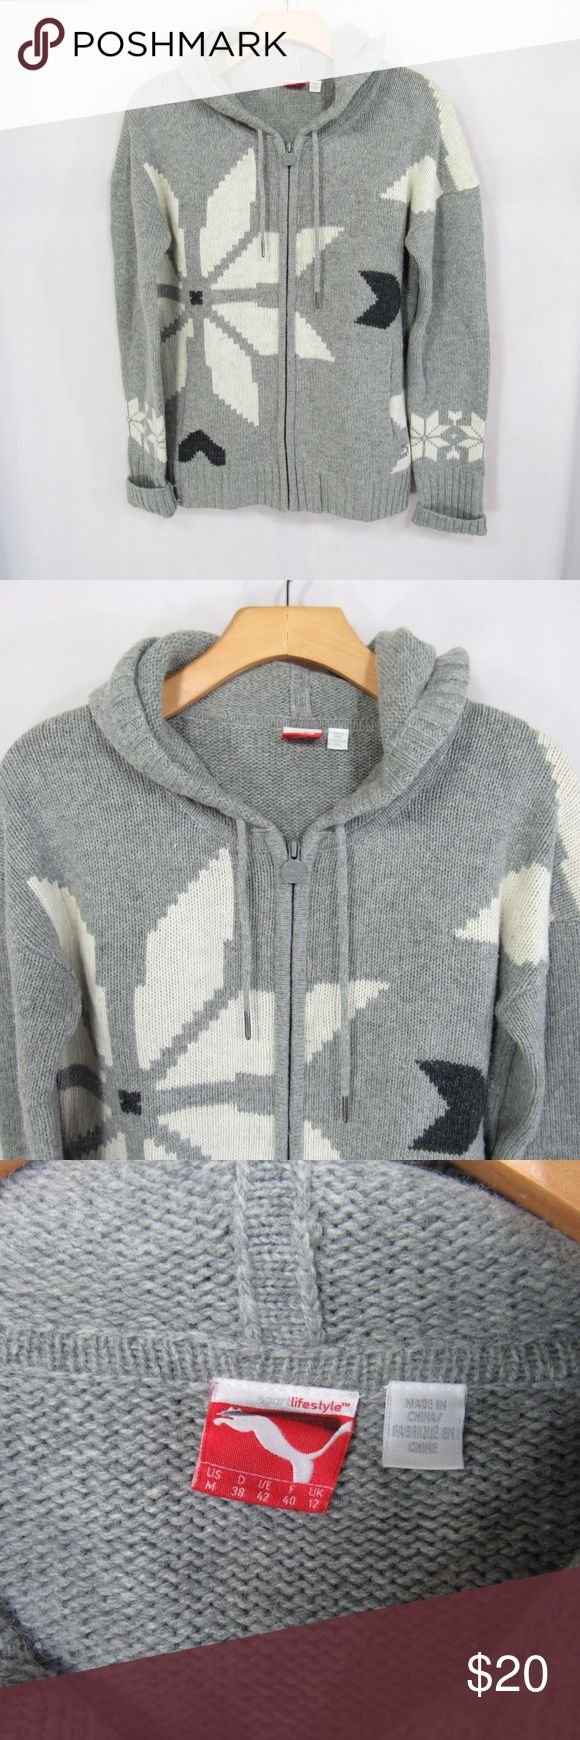 PUMA LIFESTYLE Gray Sz M Hooded Cardigan Sweater 70% Acrylic, 30% Wool   Hooded Full Zip Cardigan Sweater Gray with White snowflakes Side Pockets. Pre-loved, very warm comfy sweater, still in good condition! No Flaws Puma Sweaters Cardigans